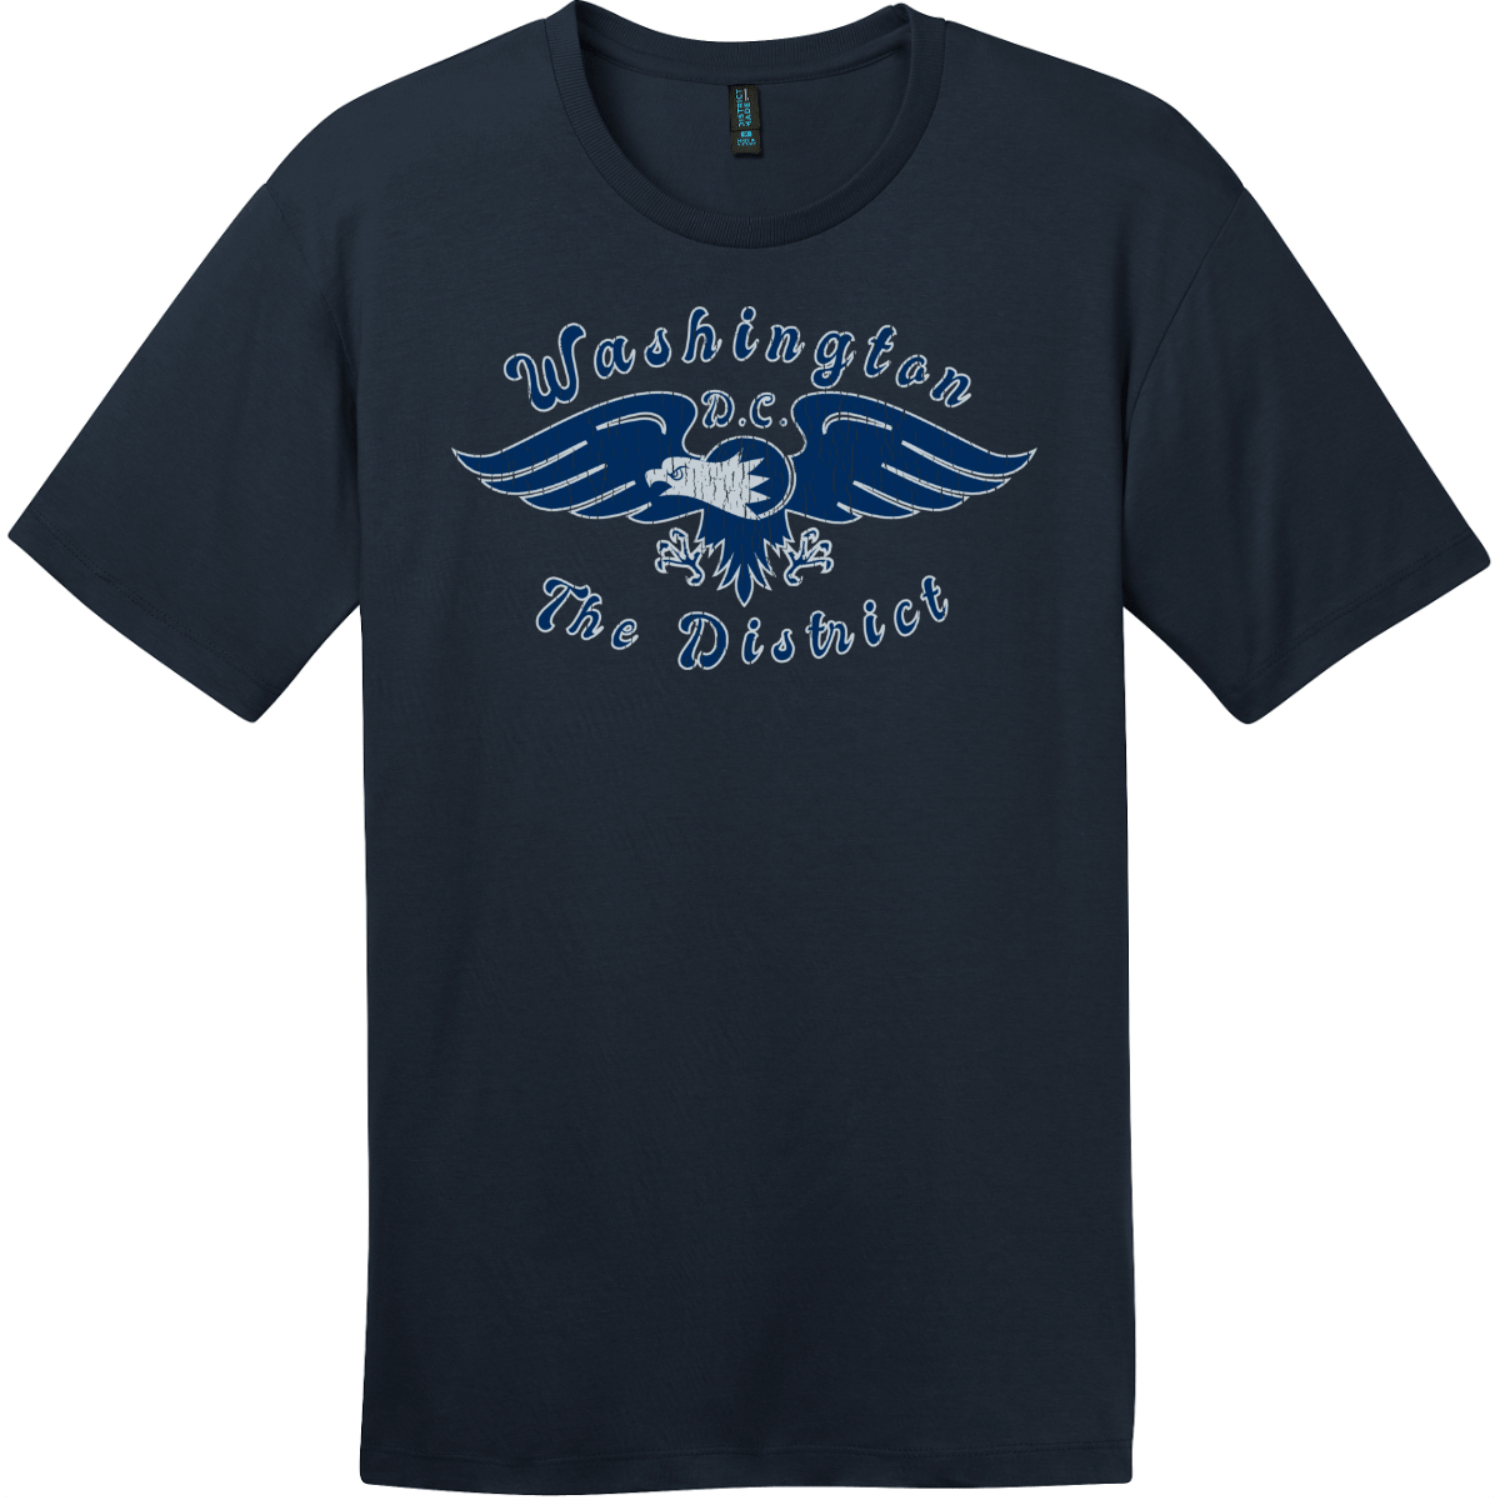 Washington DC The District Eagle T-Shirt New Navy District Perfect Weight Tee DT104